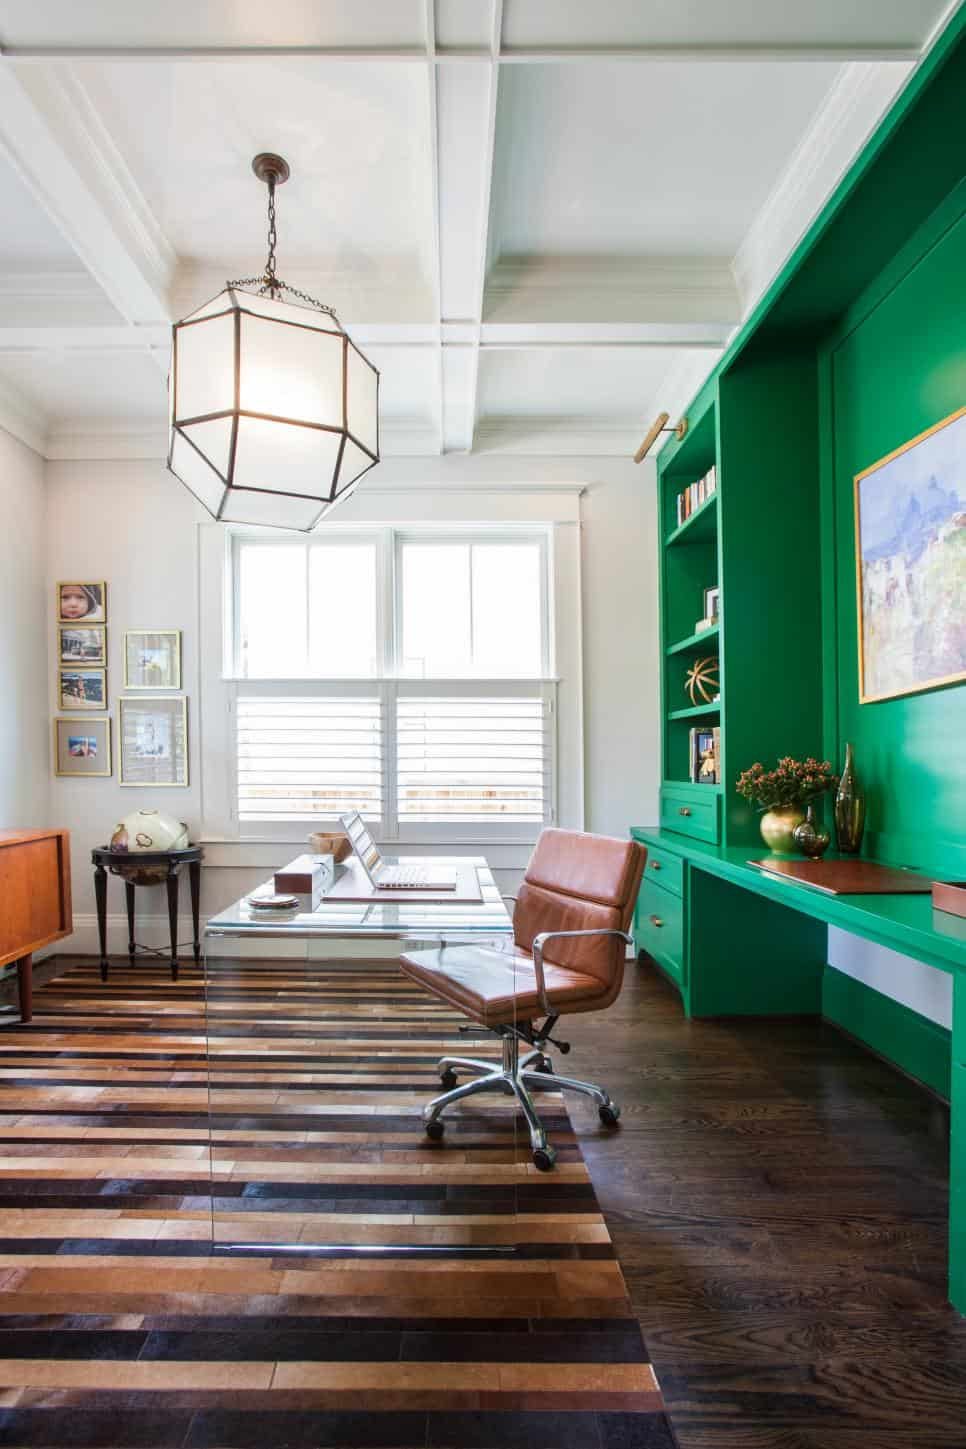 Home office built-in storage by Marie Flanigan Interiors